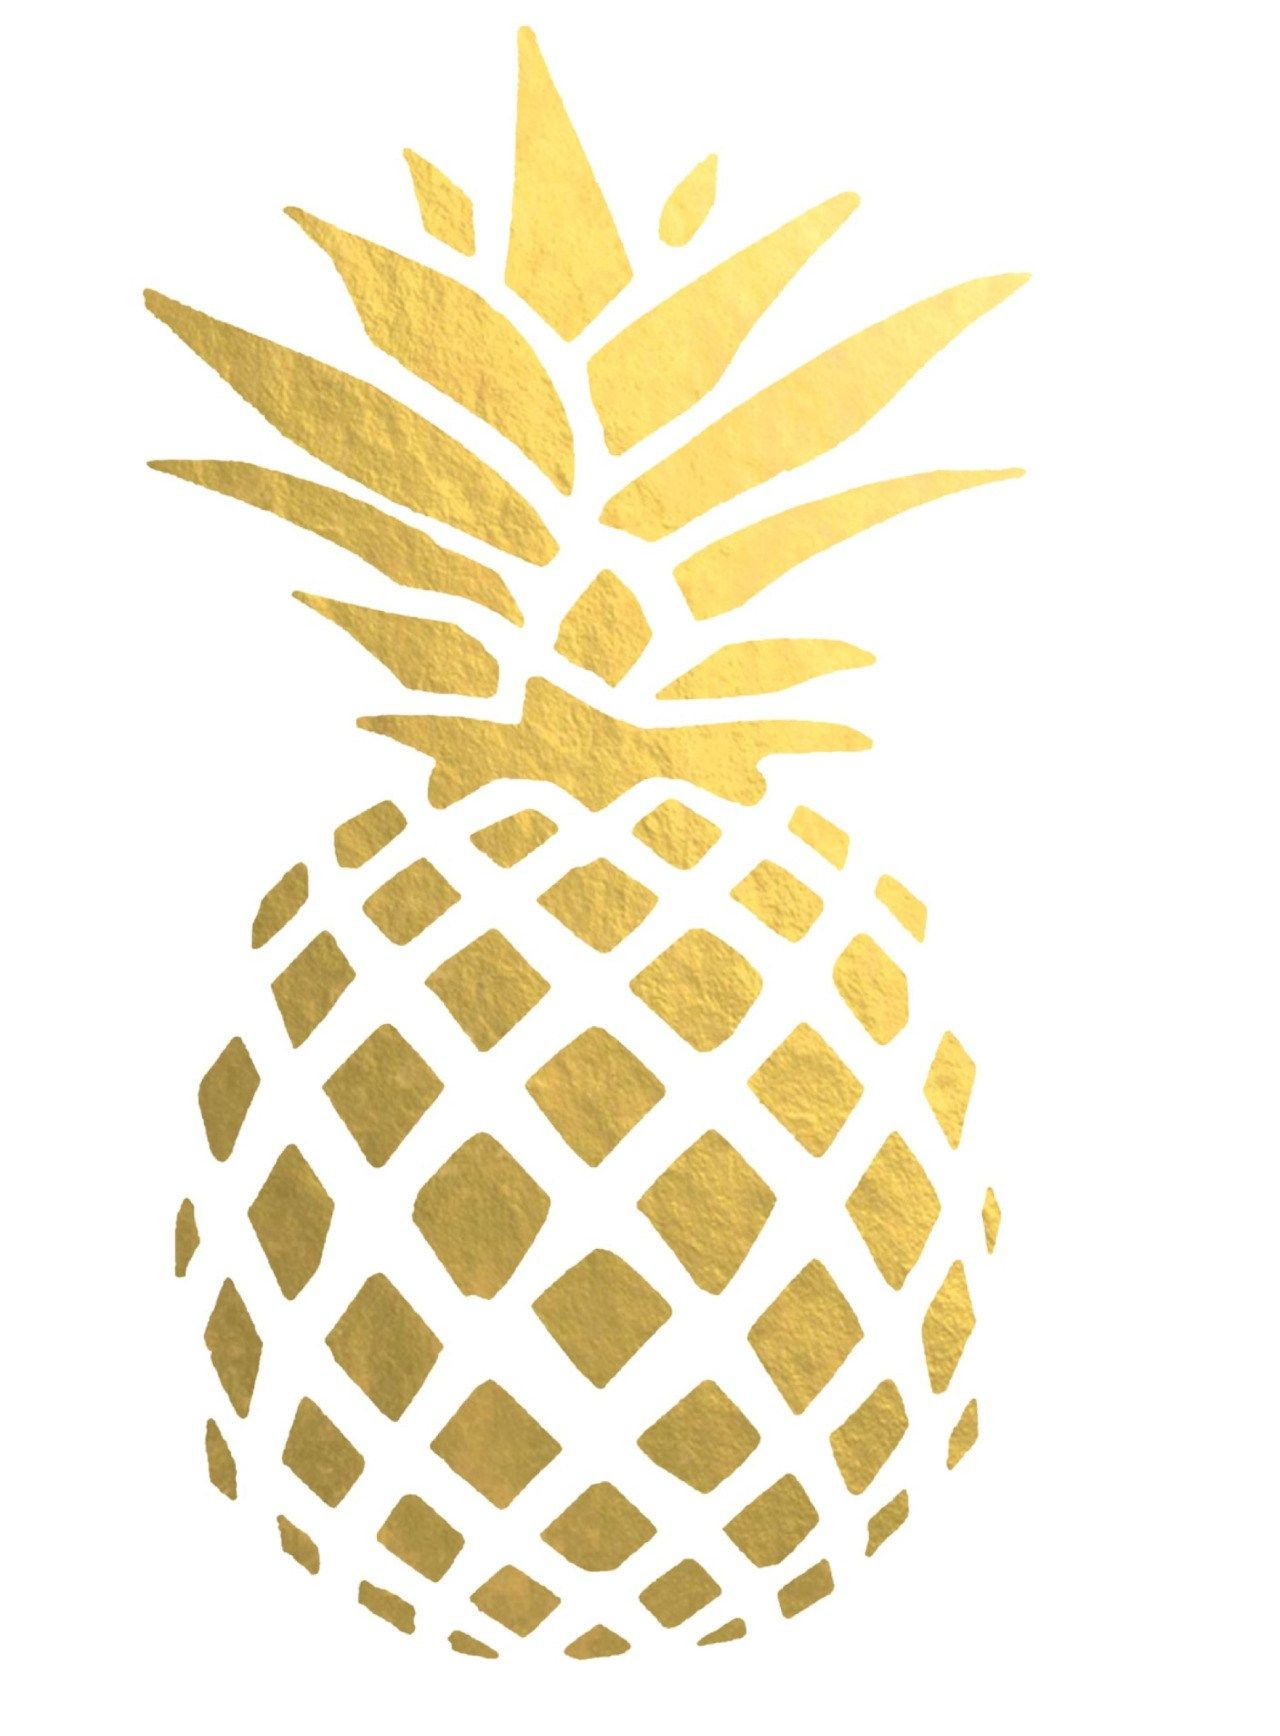 Download The Pretty Pineapple | Pineapple art, Pineapple wallpaper ...